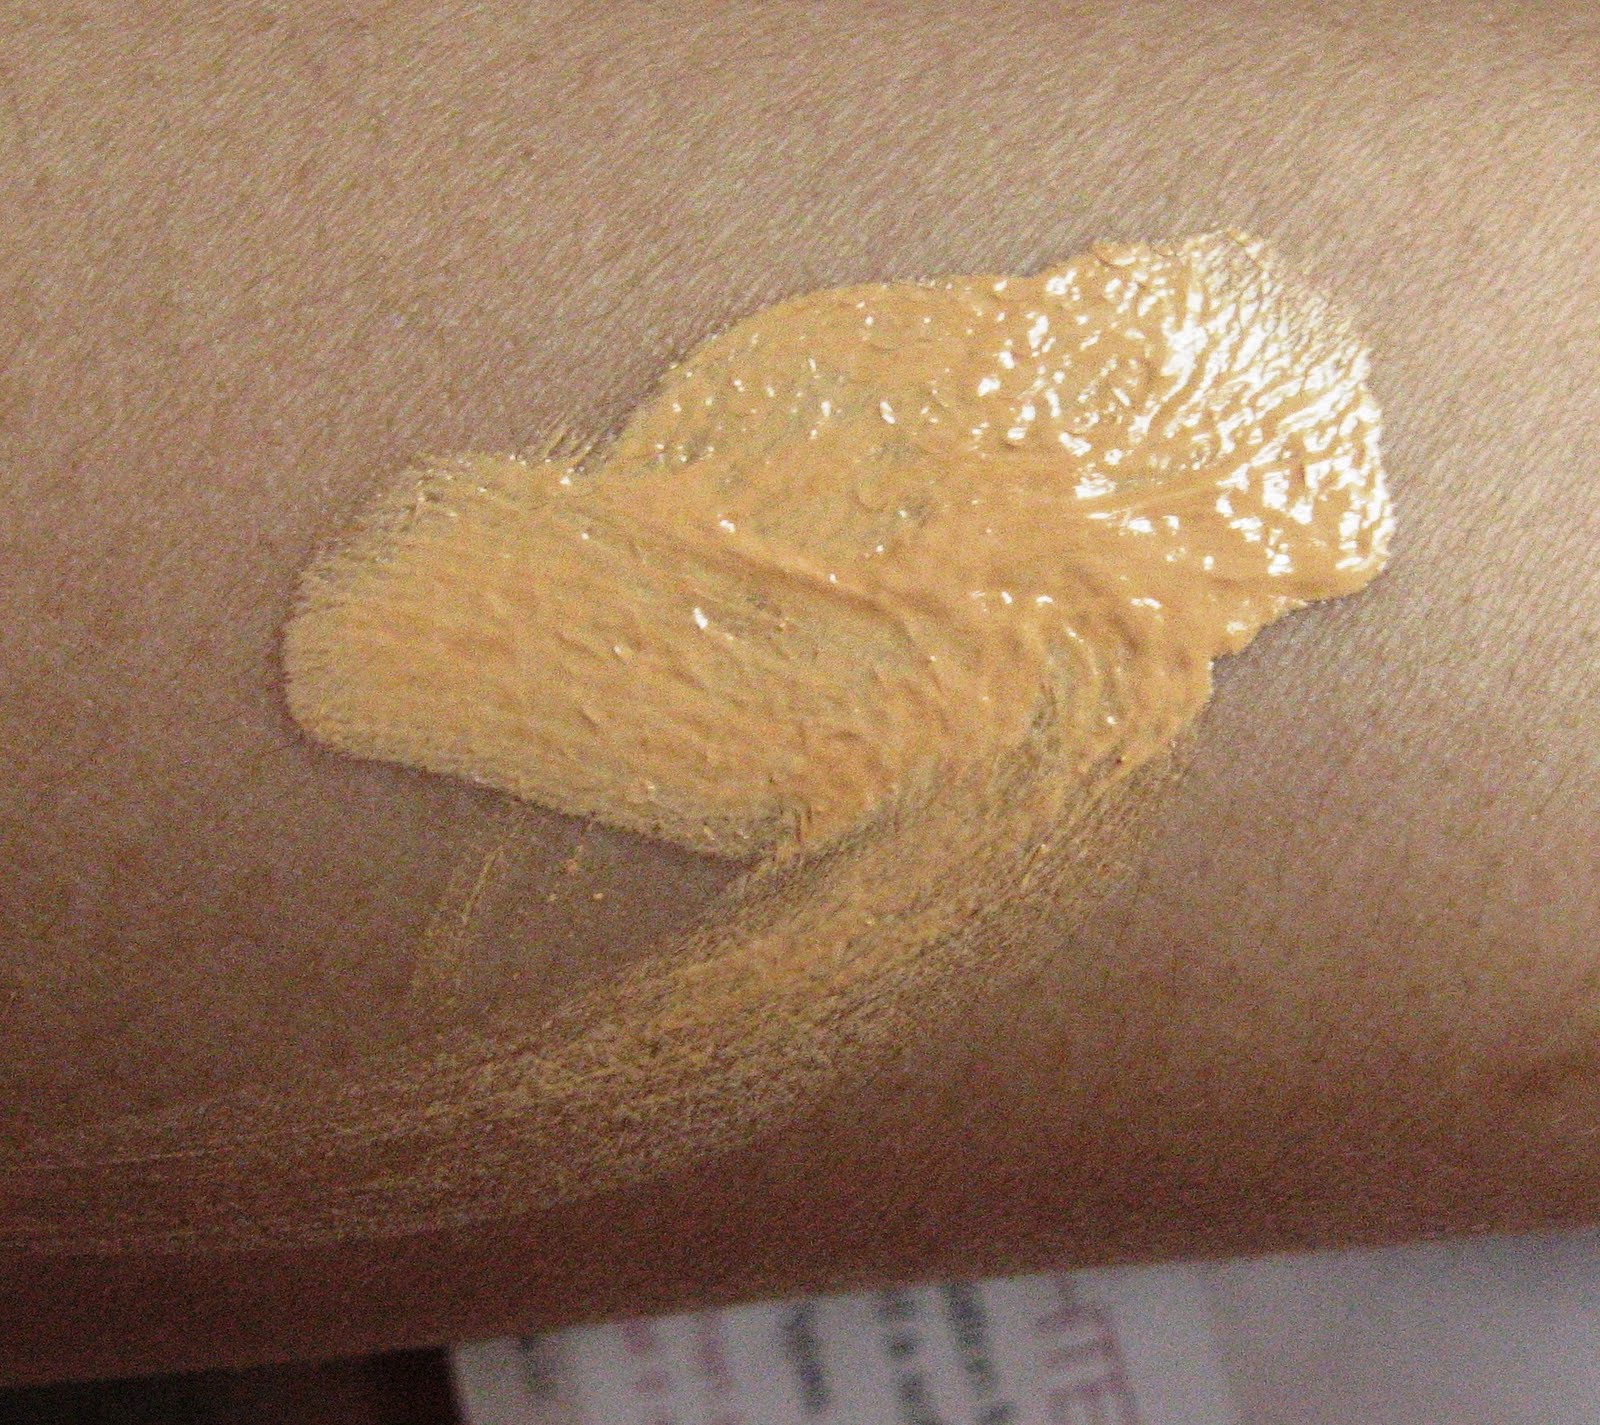 Lakme 9 to 5 foundation in Shell: Swatch unblended